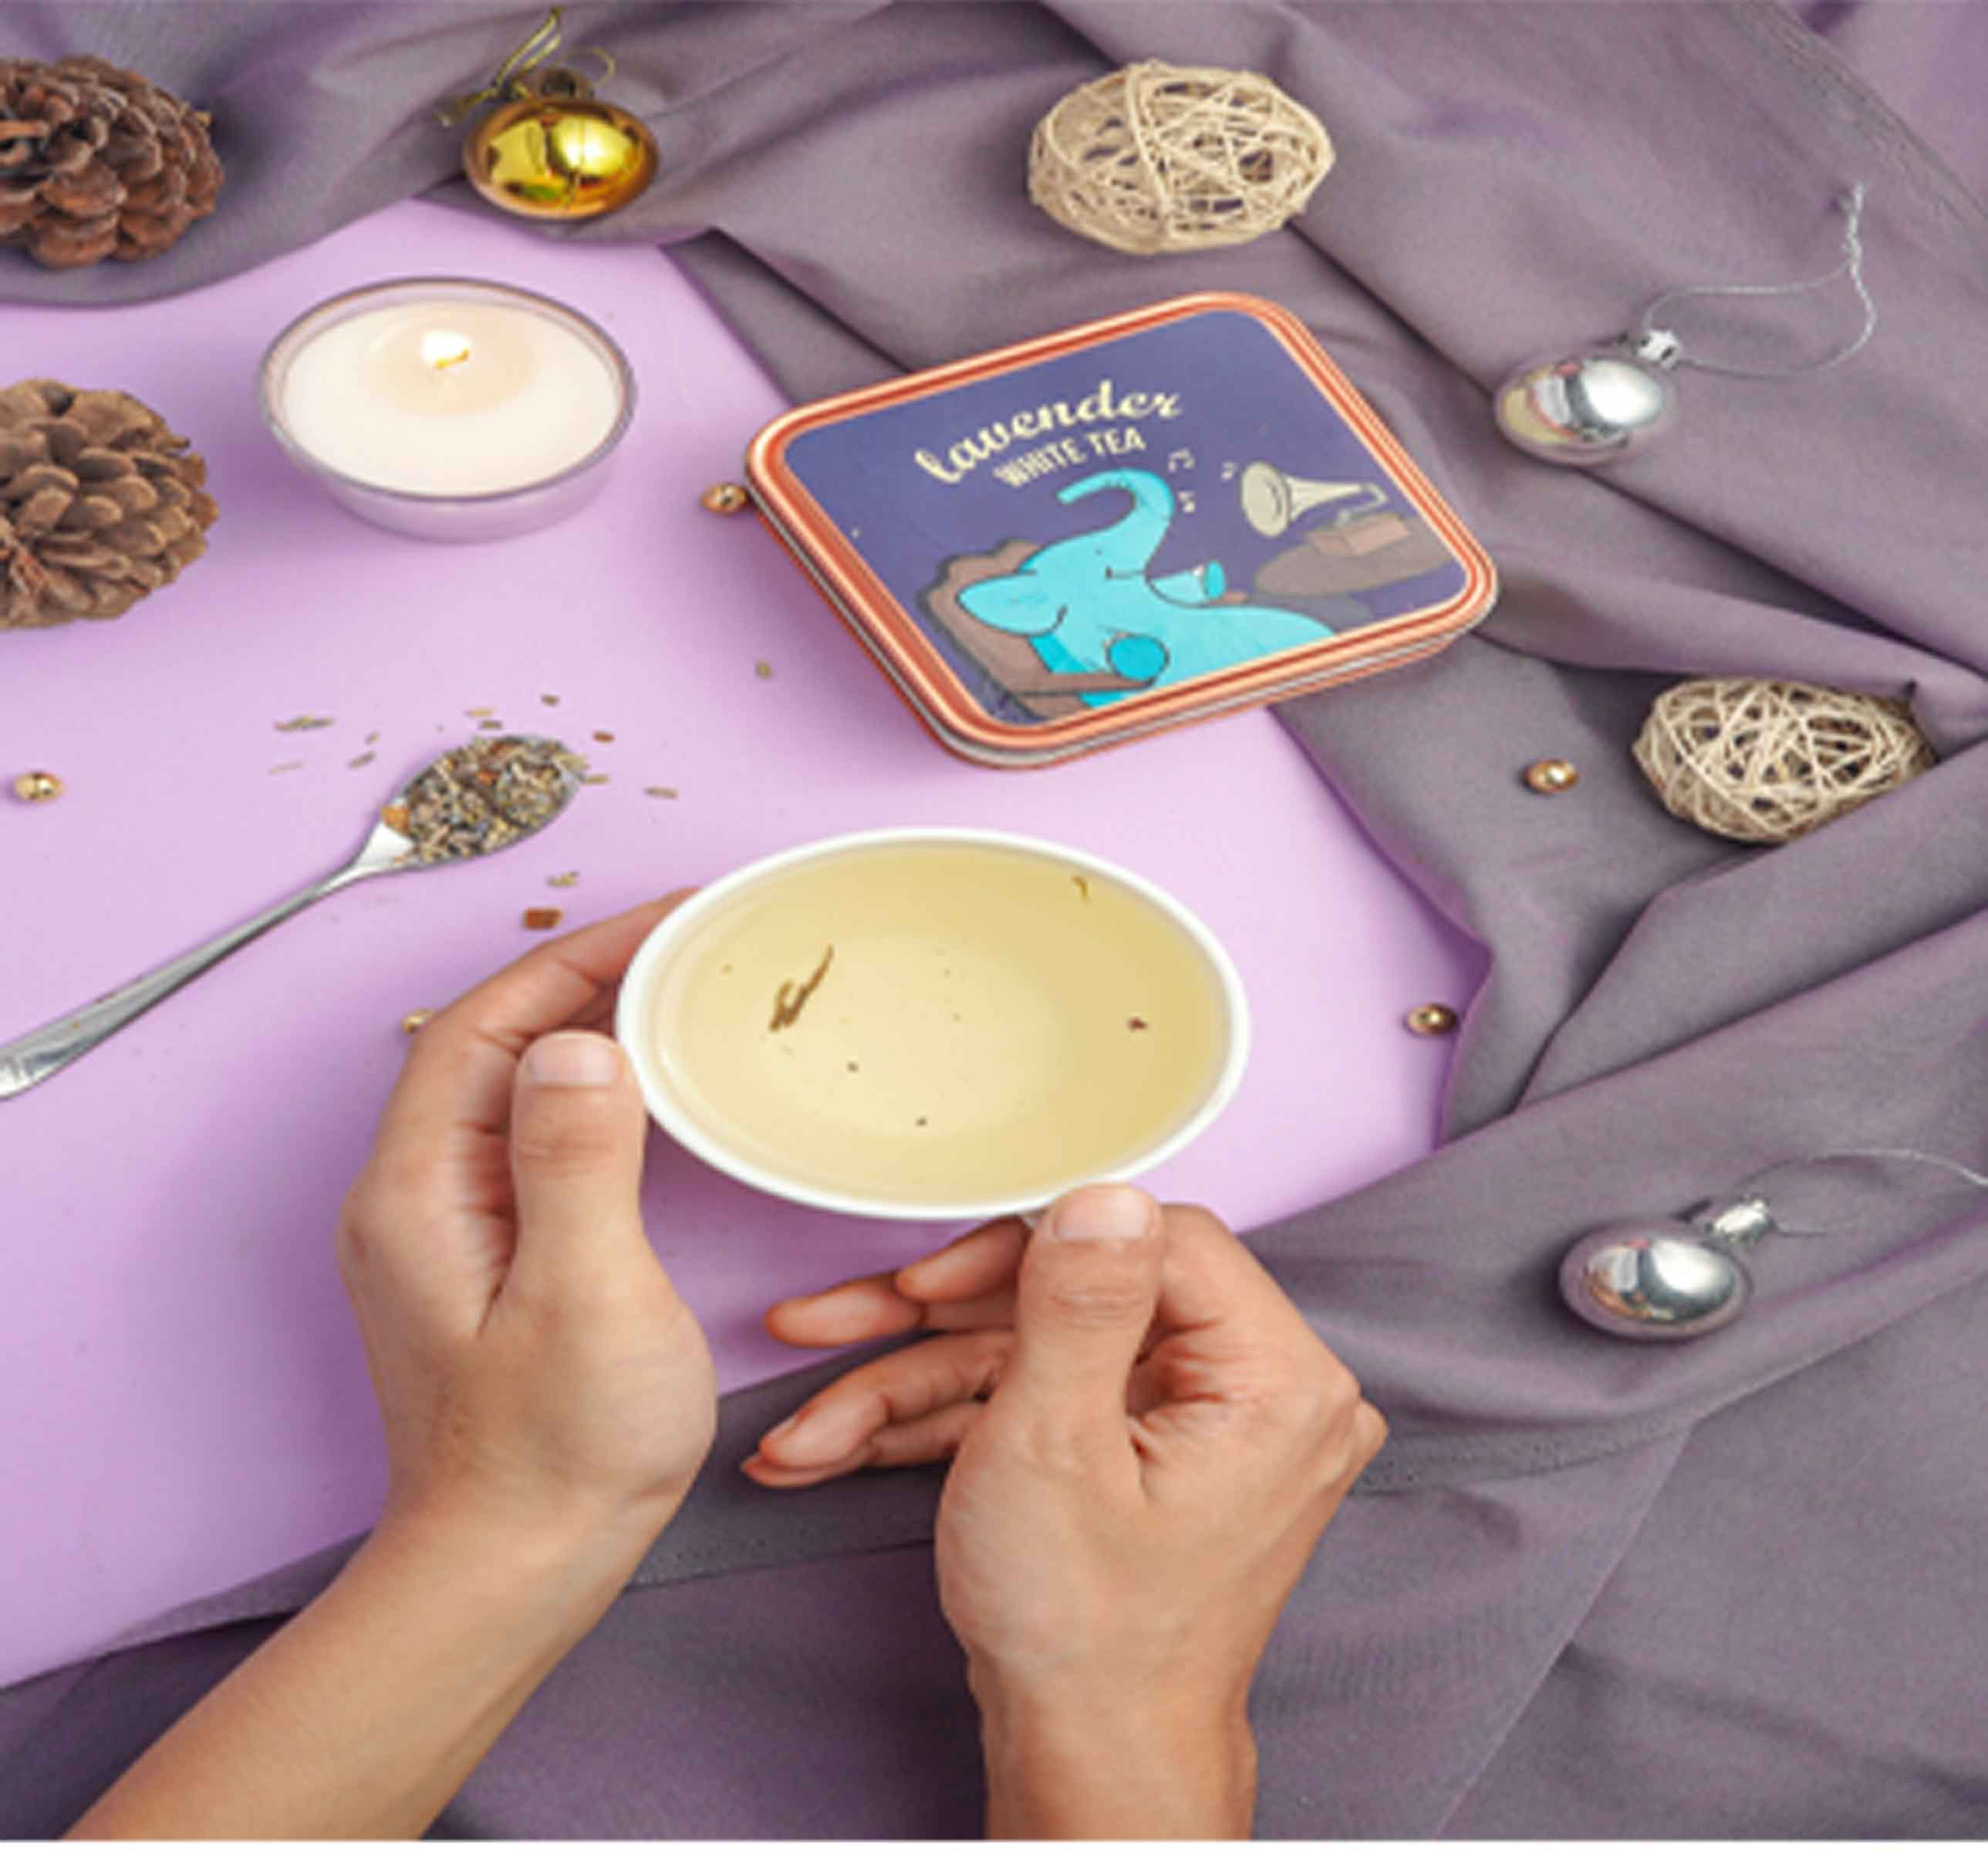 Tea Trunk founded by India's first certified Tea Sommelier launches a collection of teas specially curated to relieve stress and anxiety